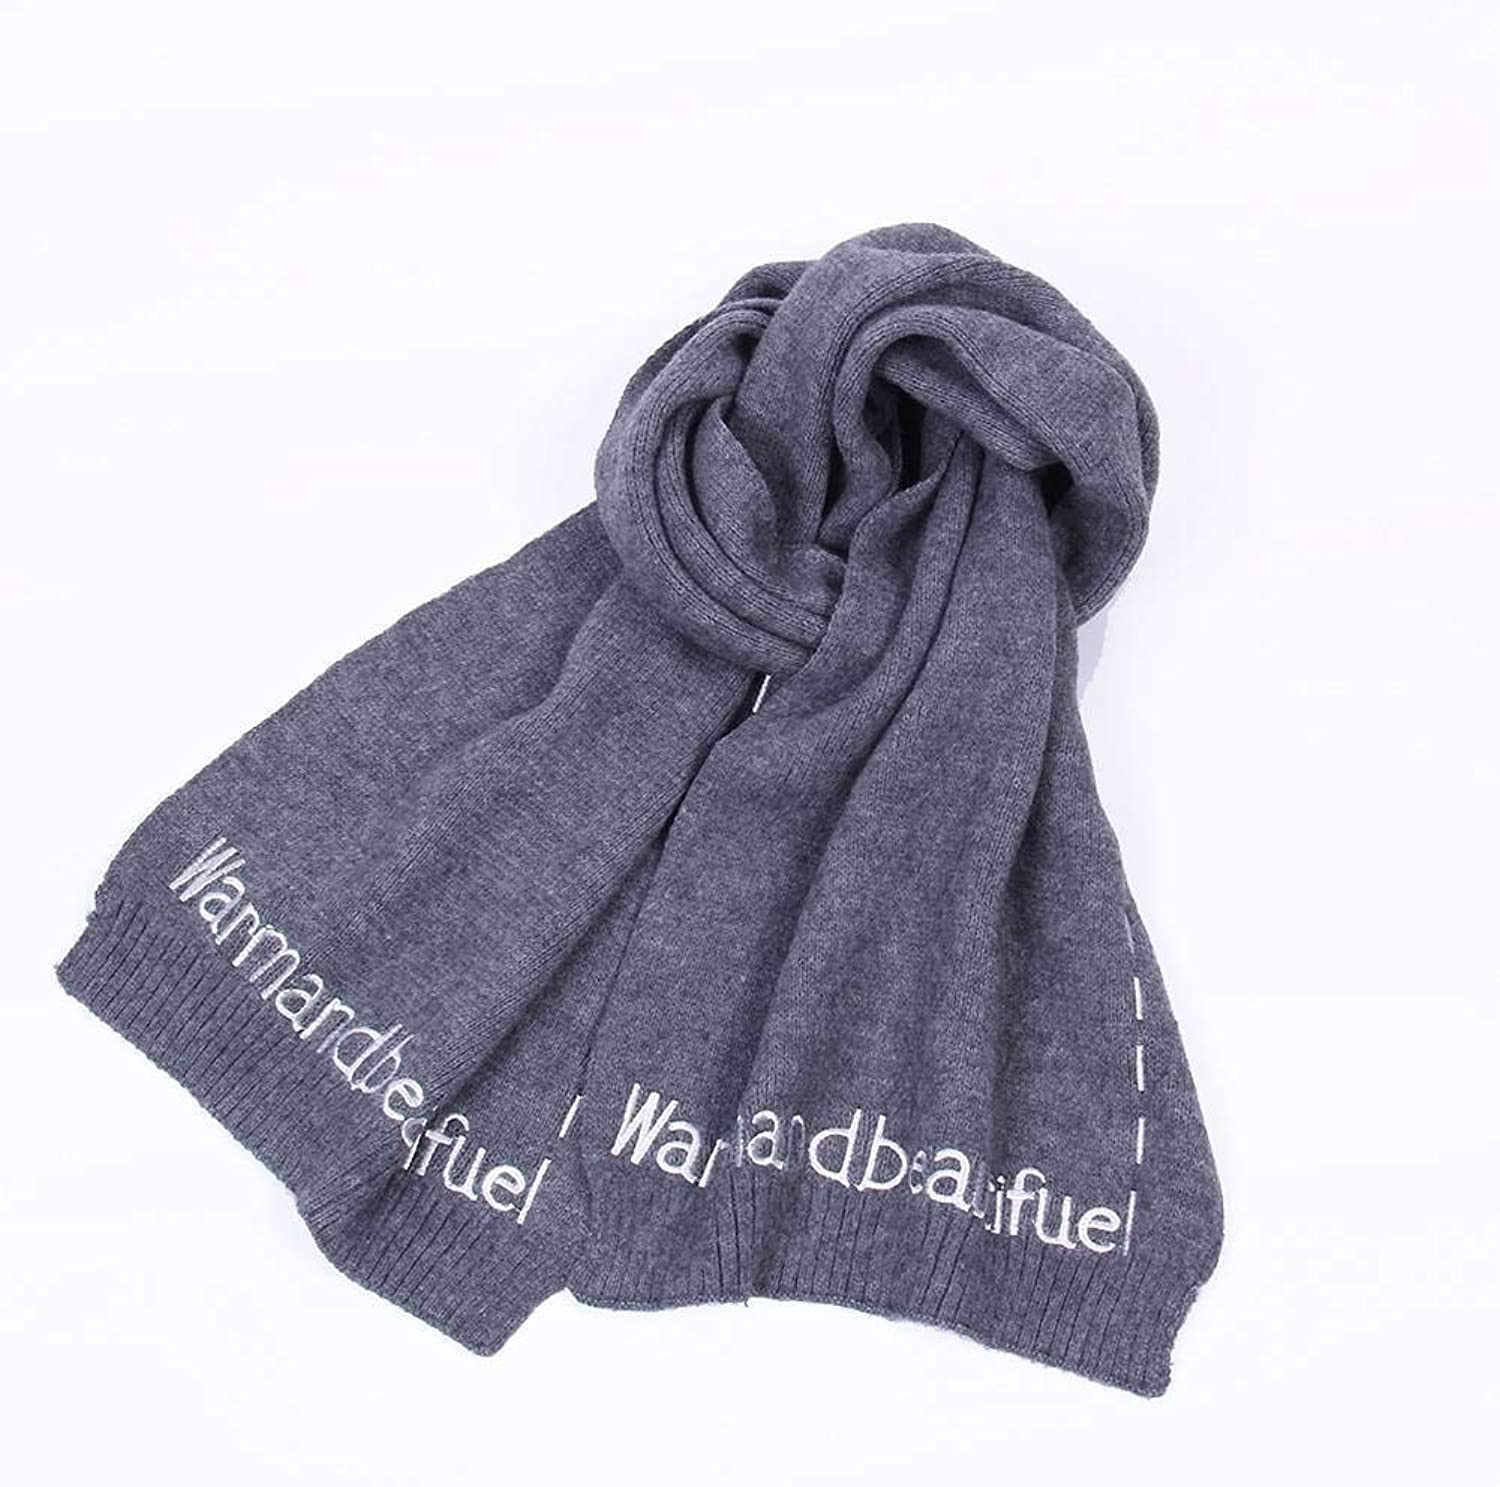 WJL European American Streets, Wool, Knitting, Women, Warm, Monochrome, Long, Autumn Winter, Outdoor, MultiFunctional Fgreyion, Wild, Warm, Shawl, Scarf, Gift